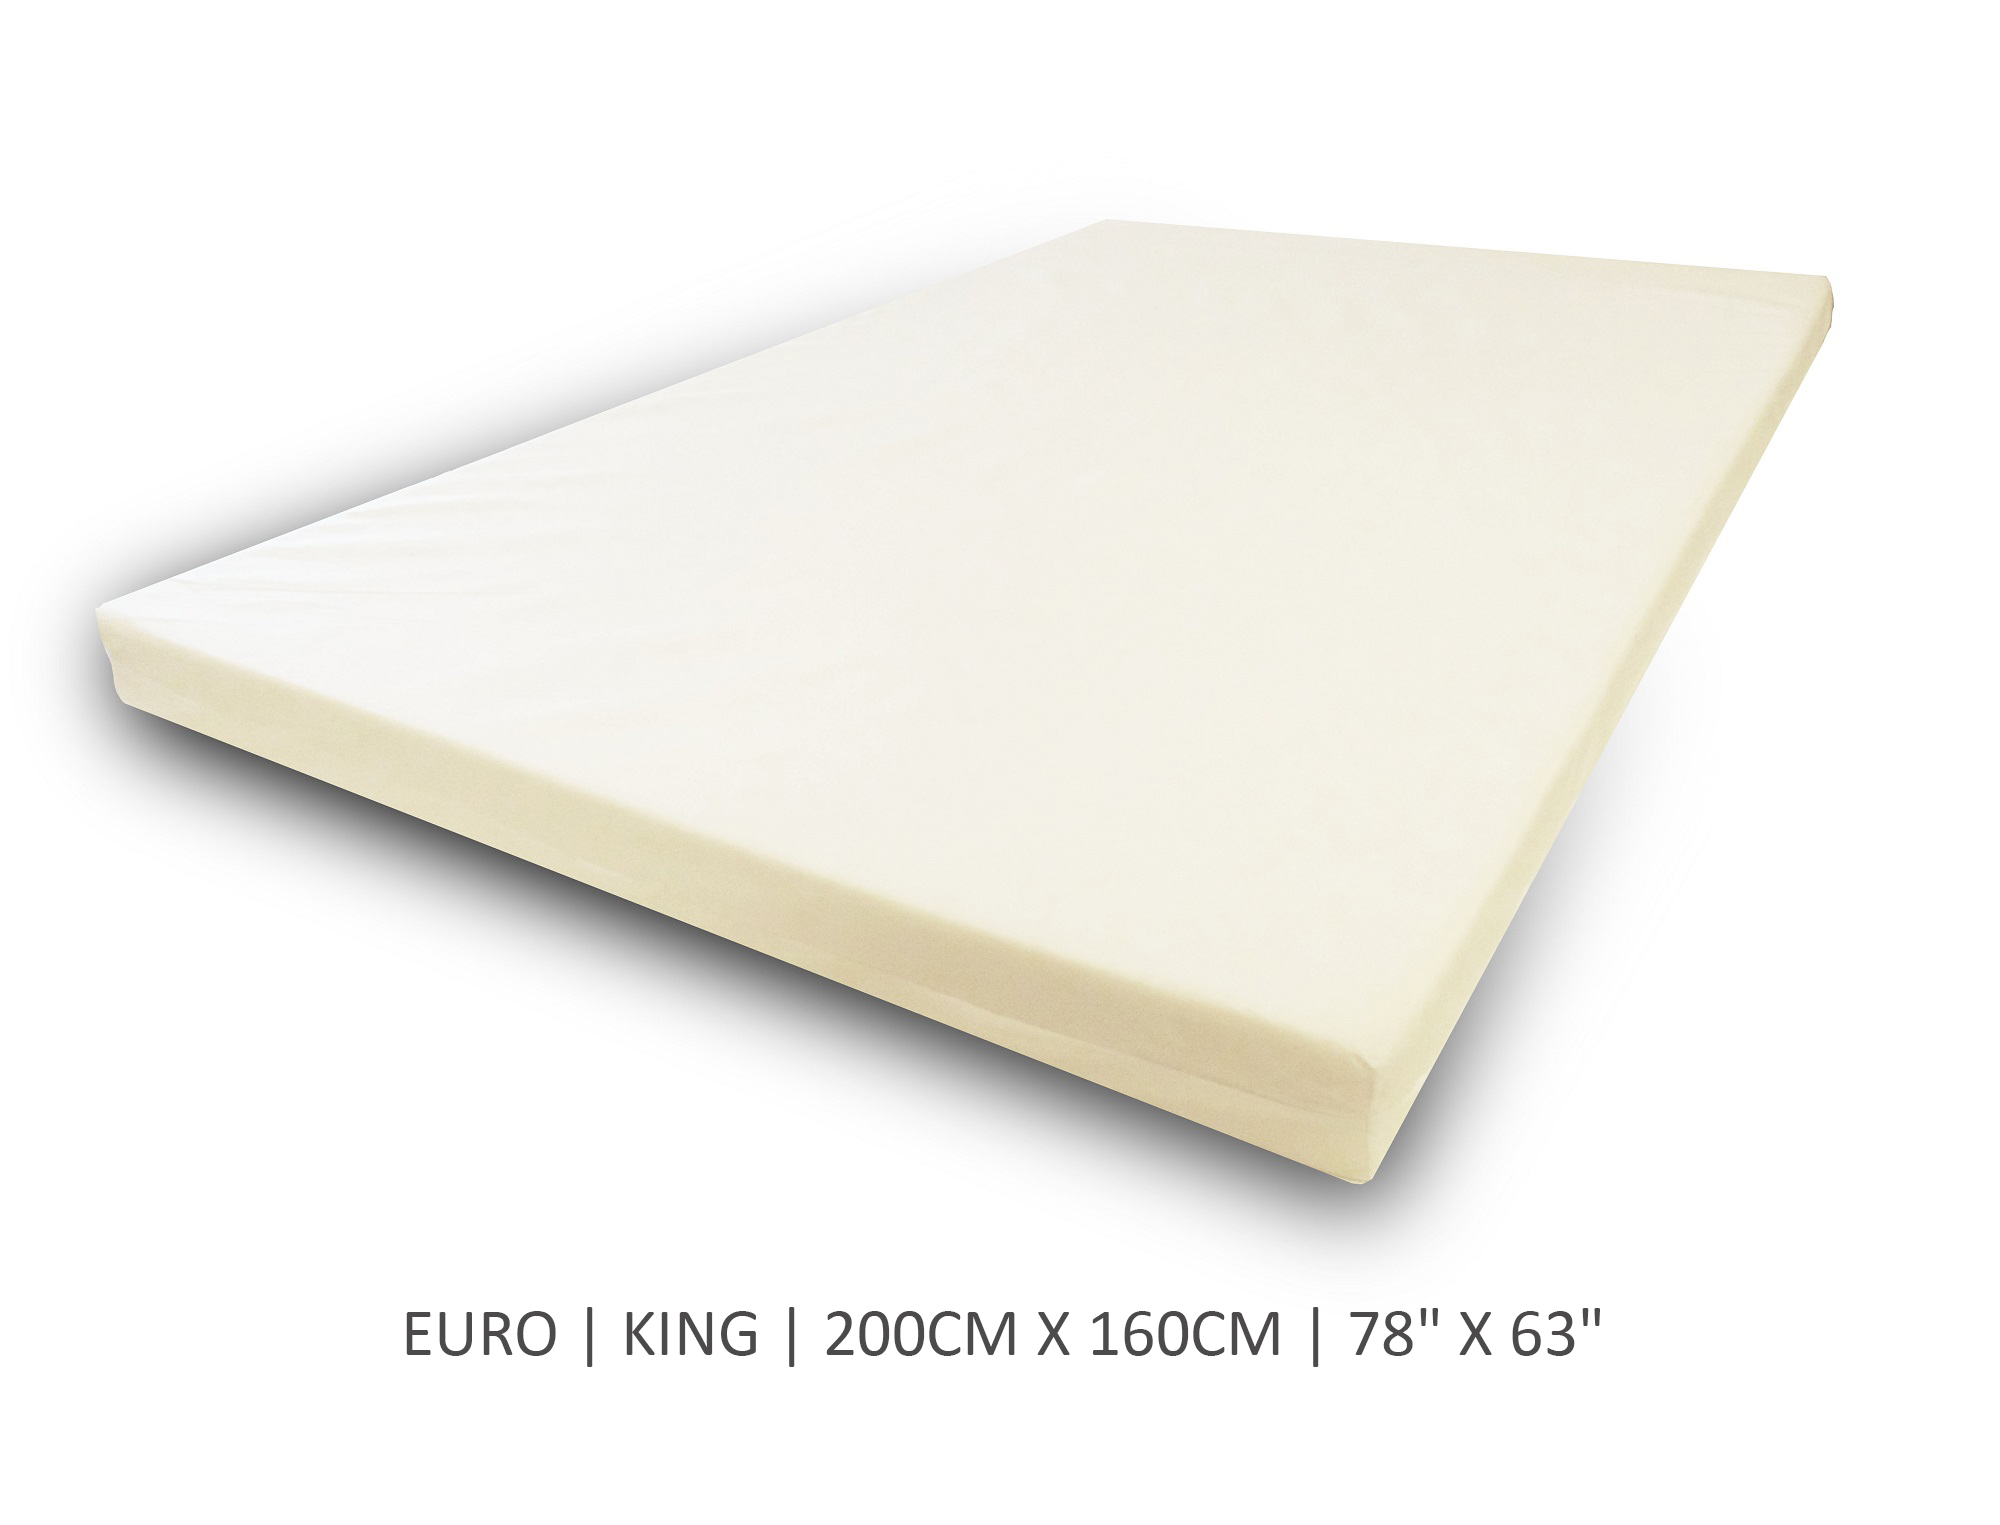 Euro King Size Mattress Topper Replacement Covers